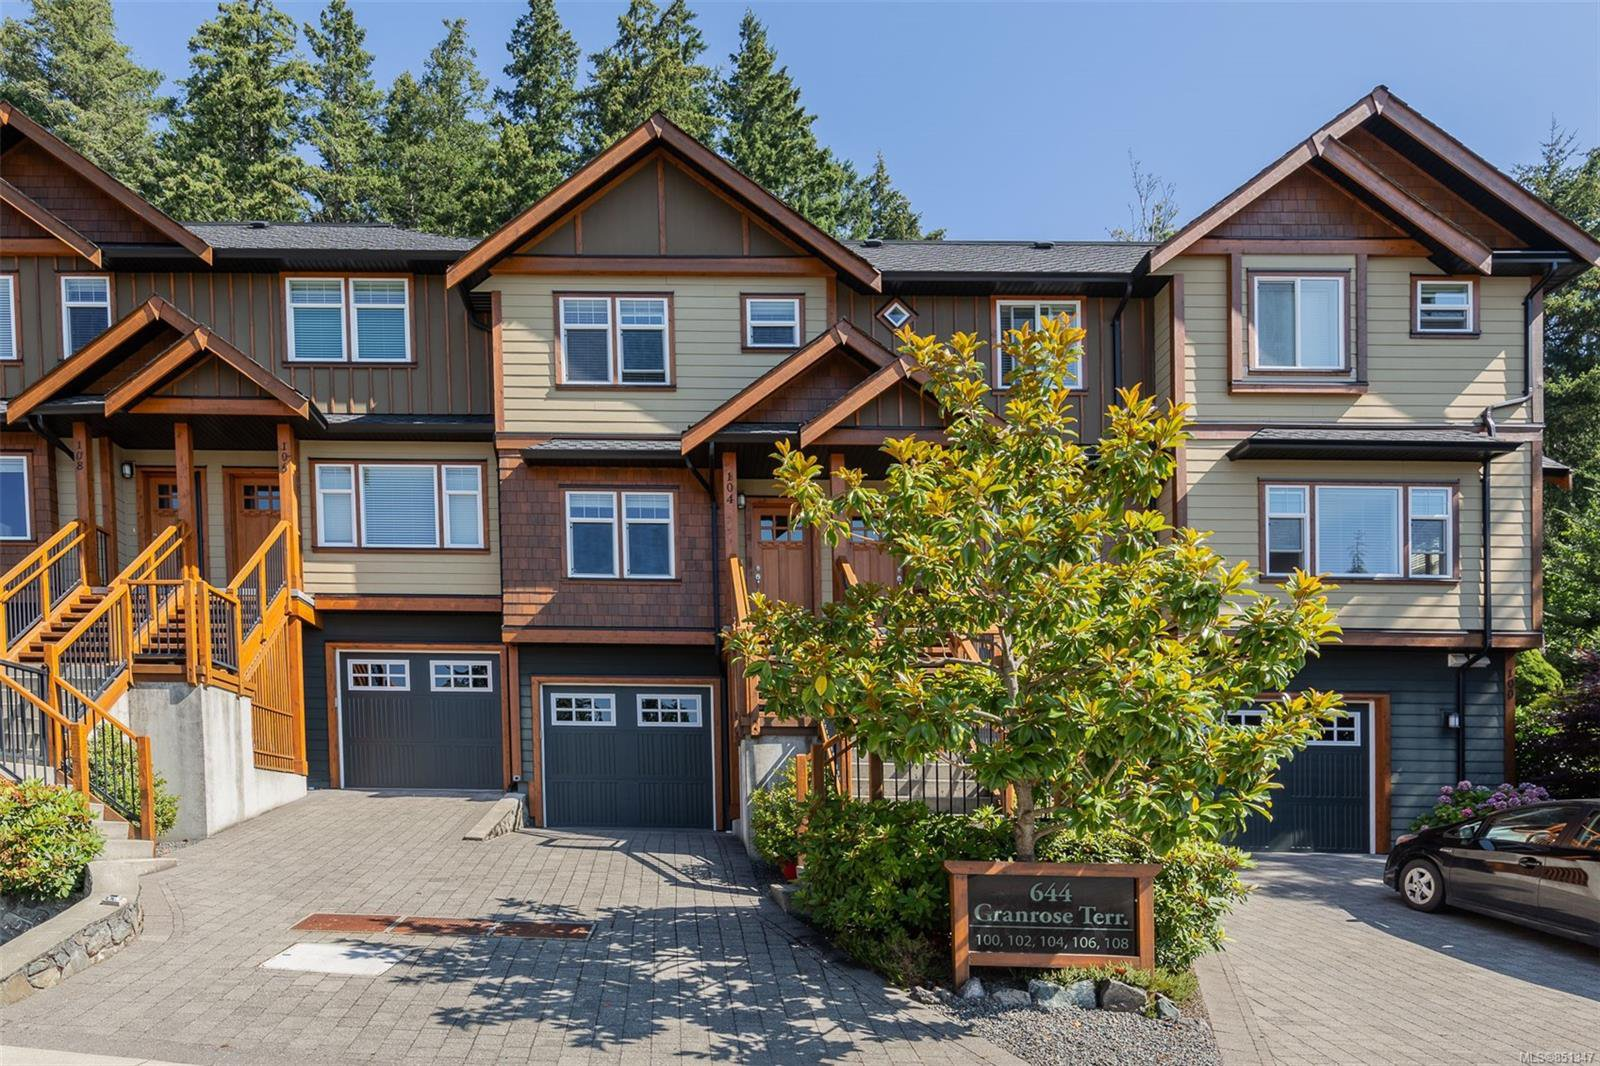 Main Photo: 104 644 Granrose Terr in : Co Latoria Row/Townhouse for sale (Colwood)  : MLS®# 851347